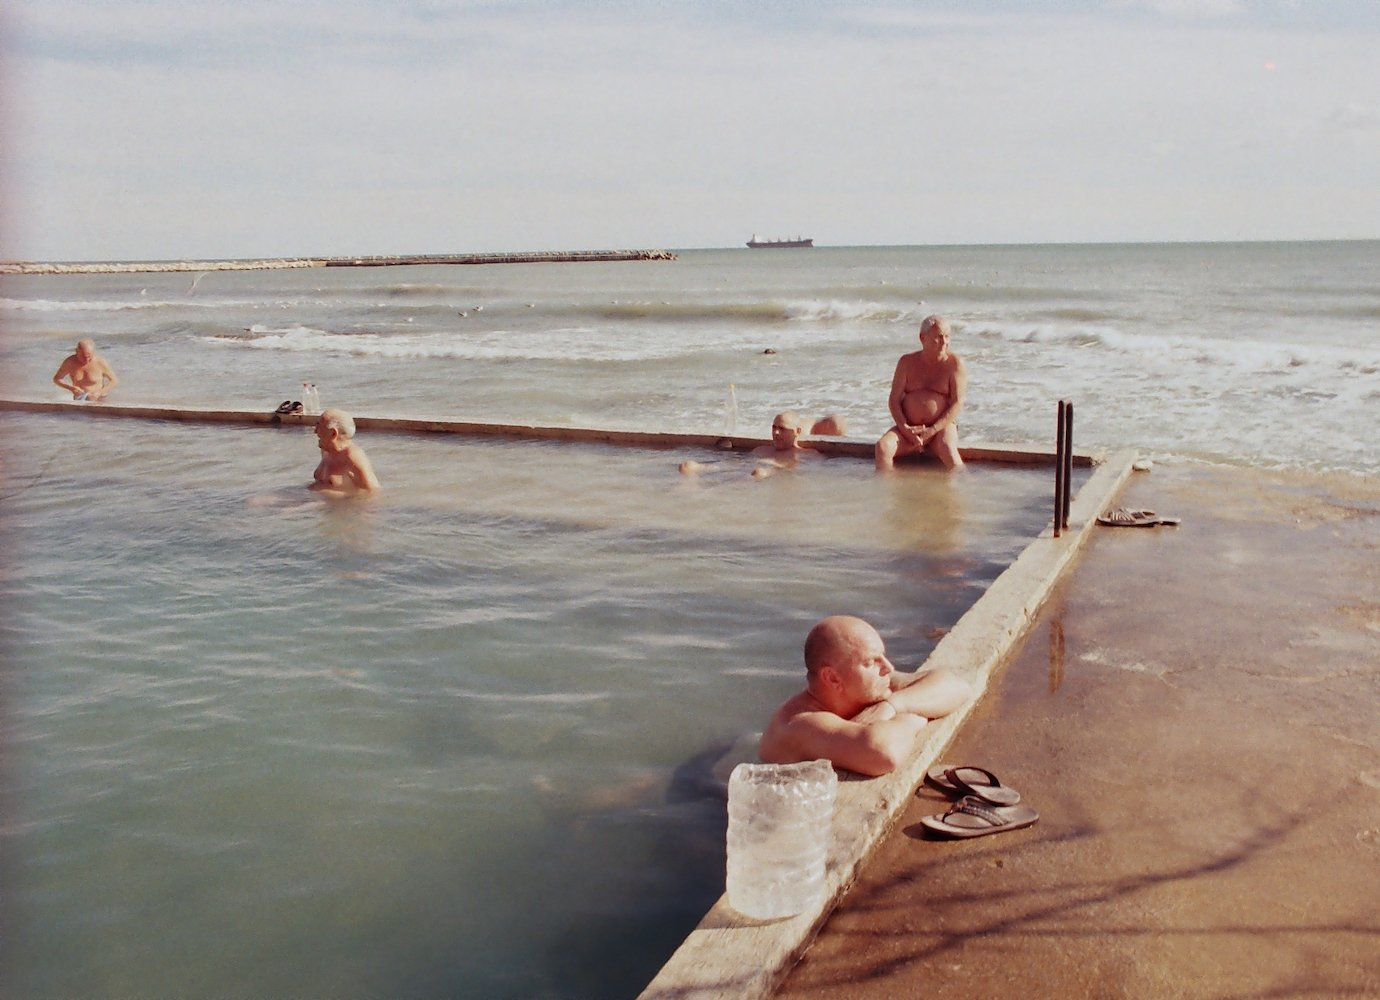 Set on the Black Sea, this tender documentary about a swimming pool is a window onto Bulgaria